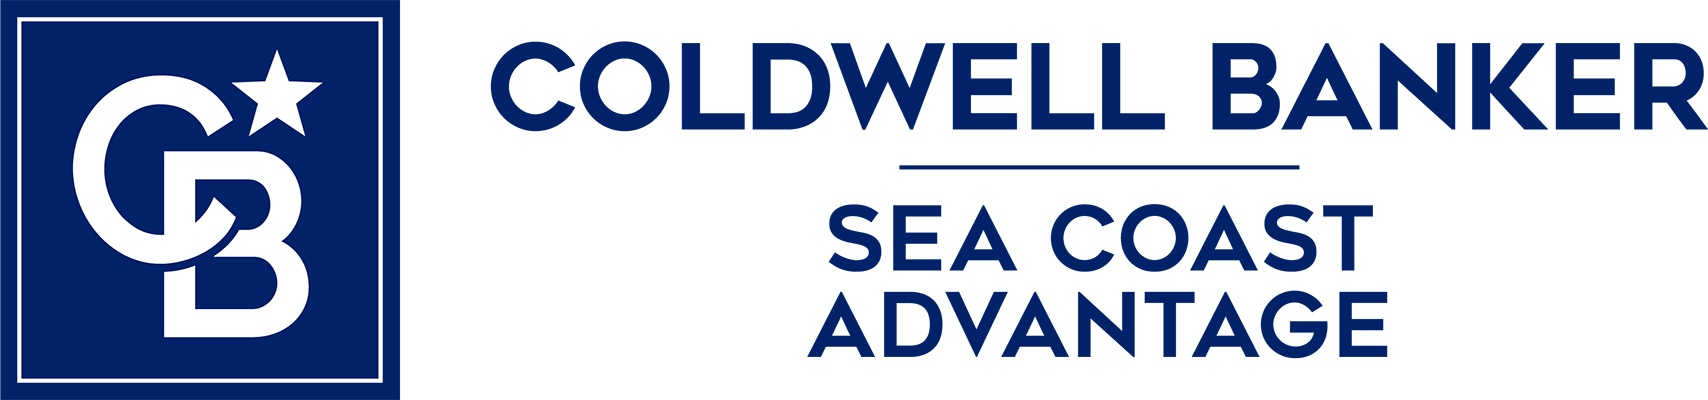 Jerry Strickland - Coldwell Banker Sea Coast Advantage Realty